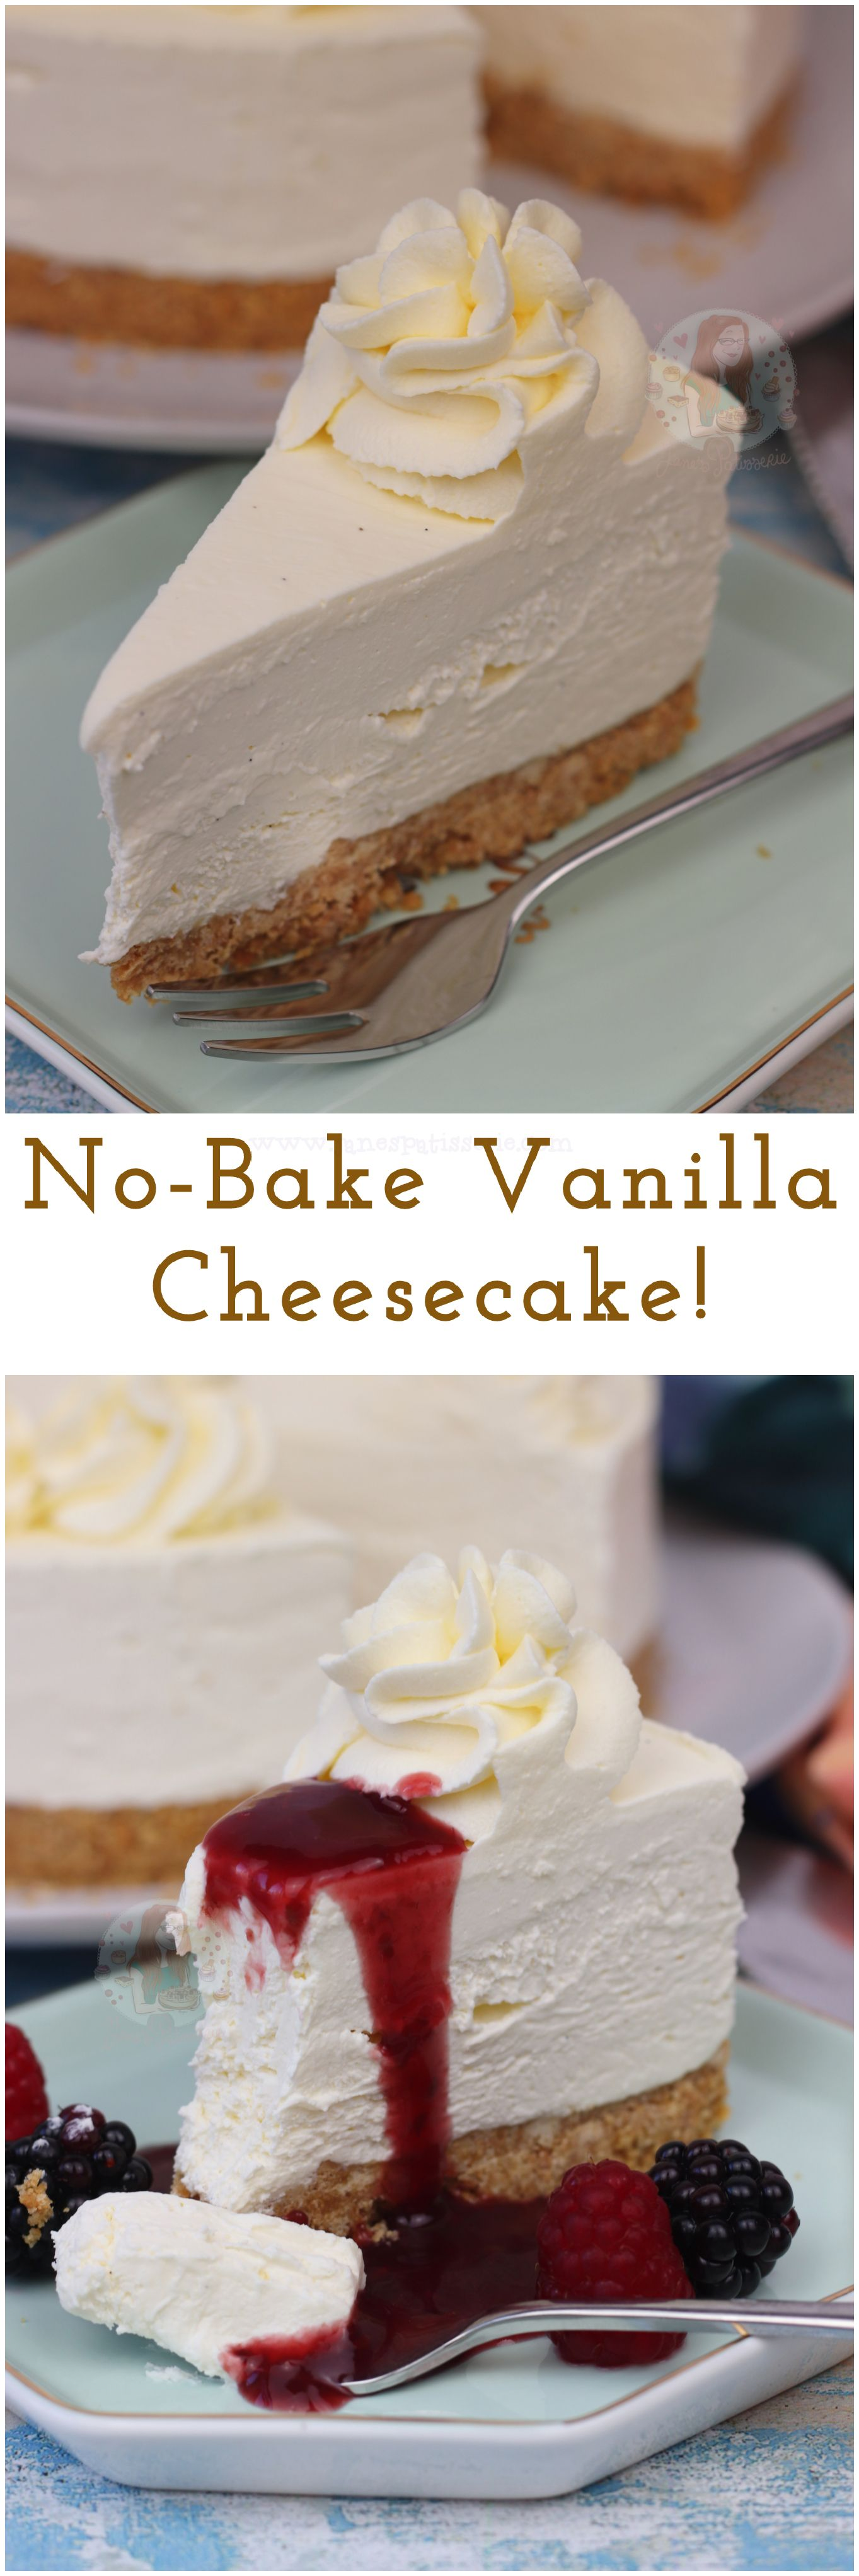 No-Bake Vanilla Cheesecake!! A Buttery Biscuit Base, Creamy No-Bake Vanilla Cheesecake Filling, and Whipped Cream on top! #cheesecake